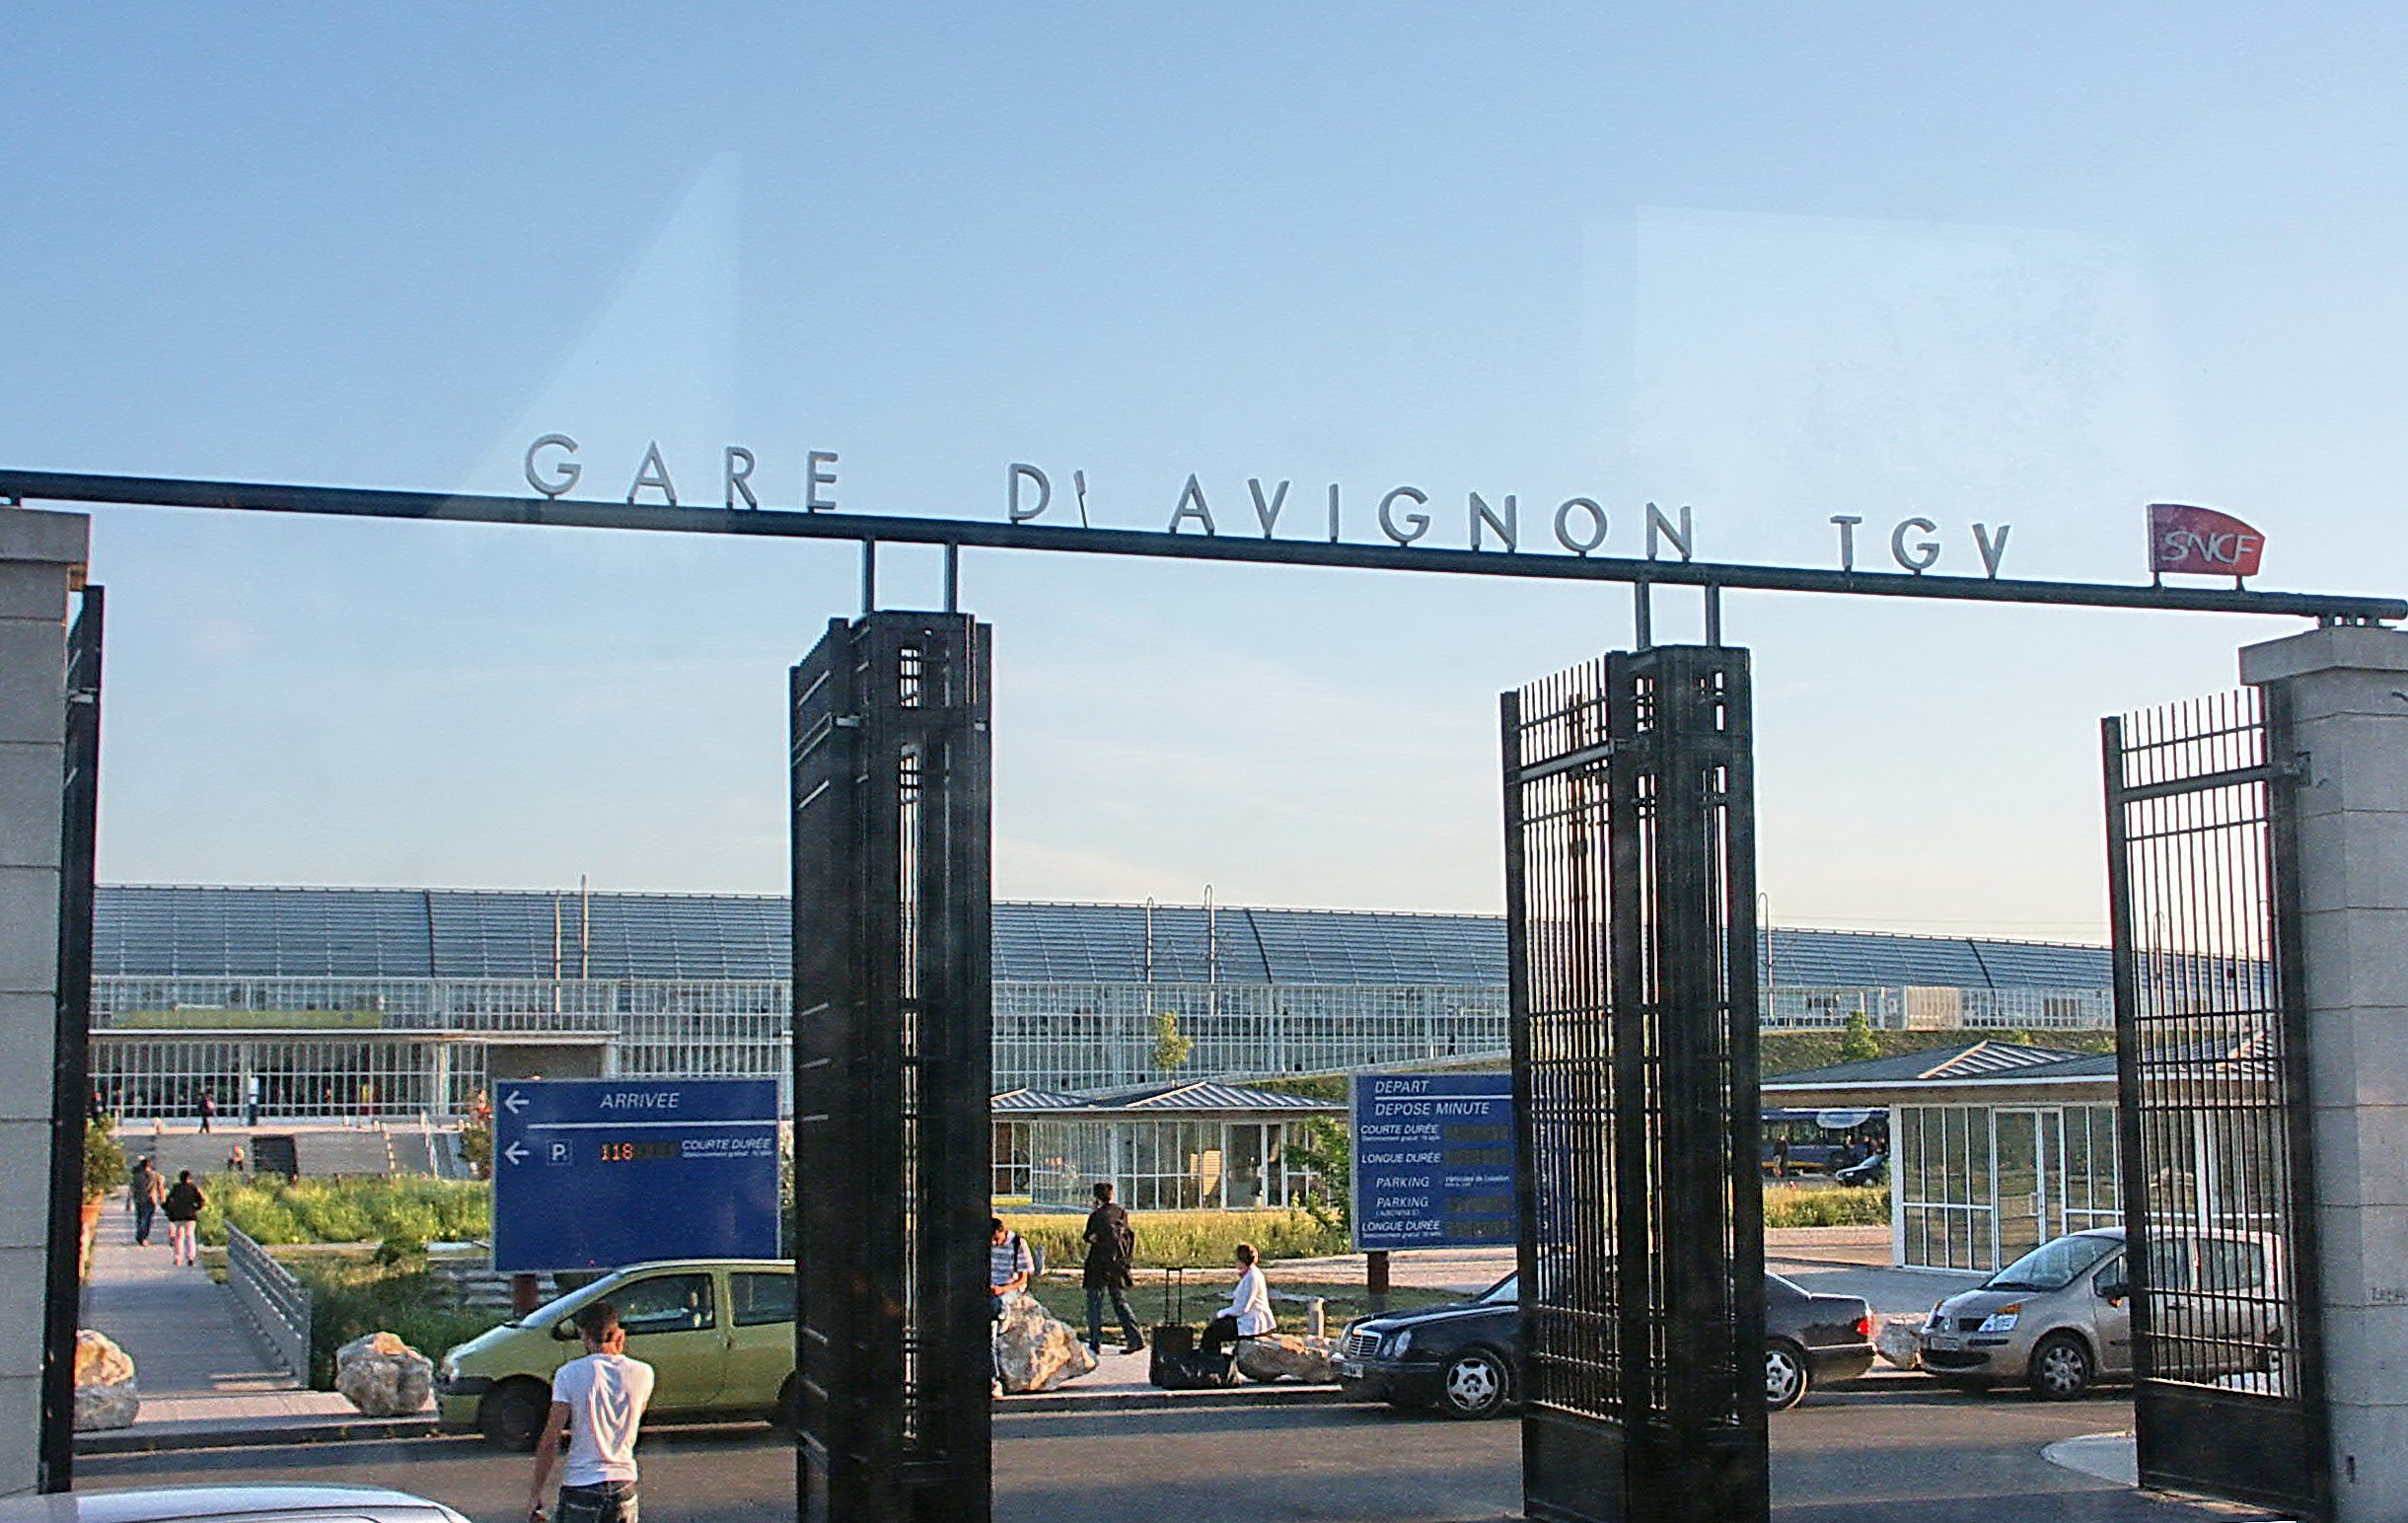 file gare d avignon tgv wikimedia commons. Black Bedroom Furniture Sets. Home Design Ideas